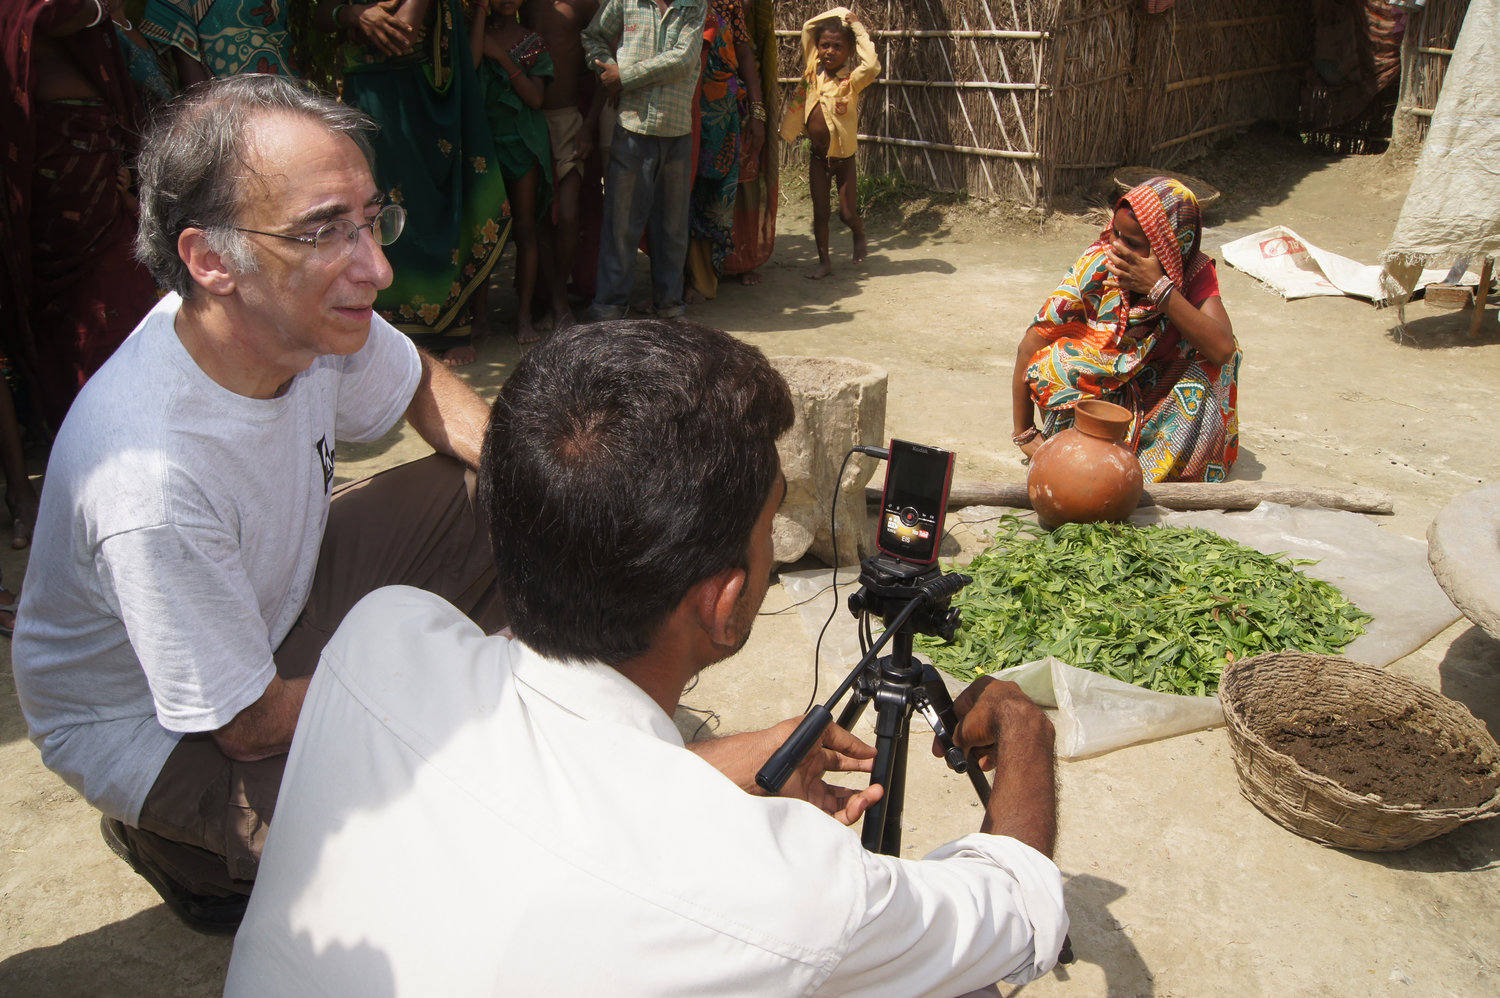 OMPT collaborated with Digital Green in India to create videos to improve local farming techniques.